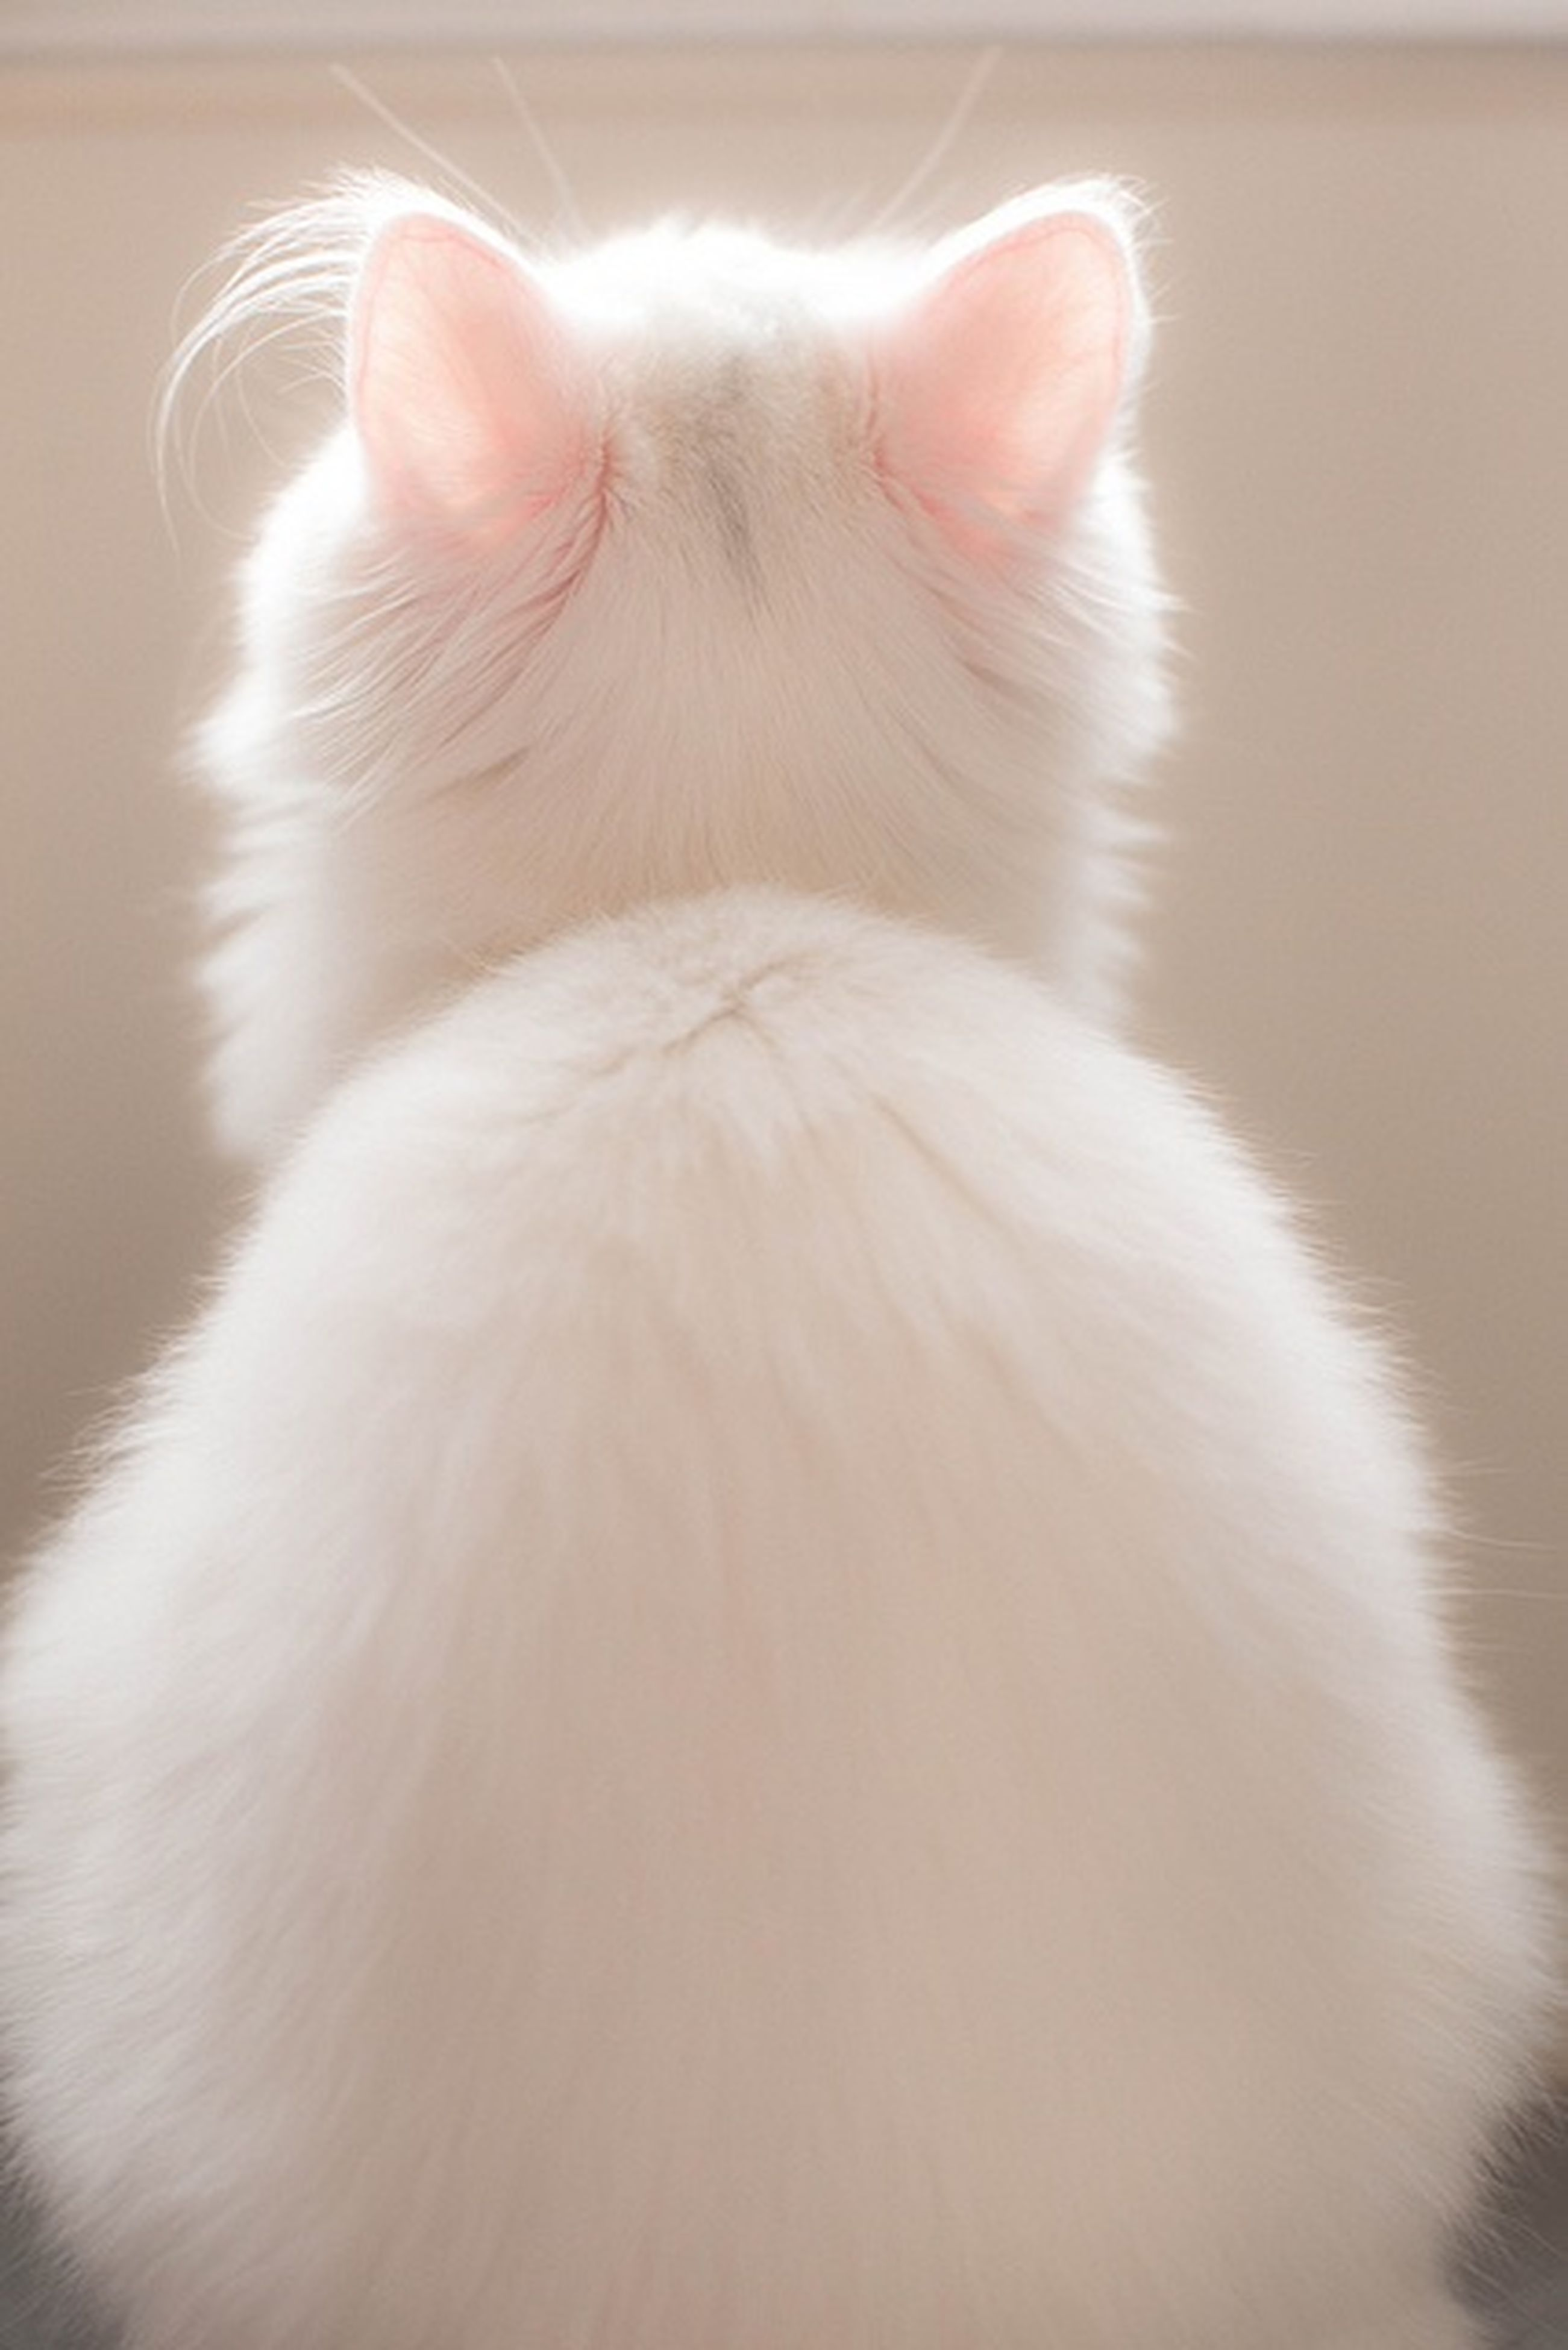 animal themes, one animal, domestic animals, pets, close-up, indoors, mammal, part of, domestic cat, animal head, white color, person, cat, whisker, animal body part, cropped, focus on foreground, feline, looking away